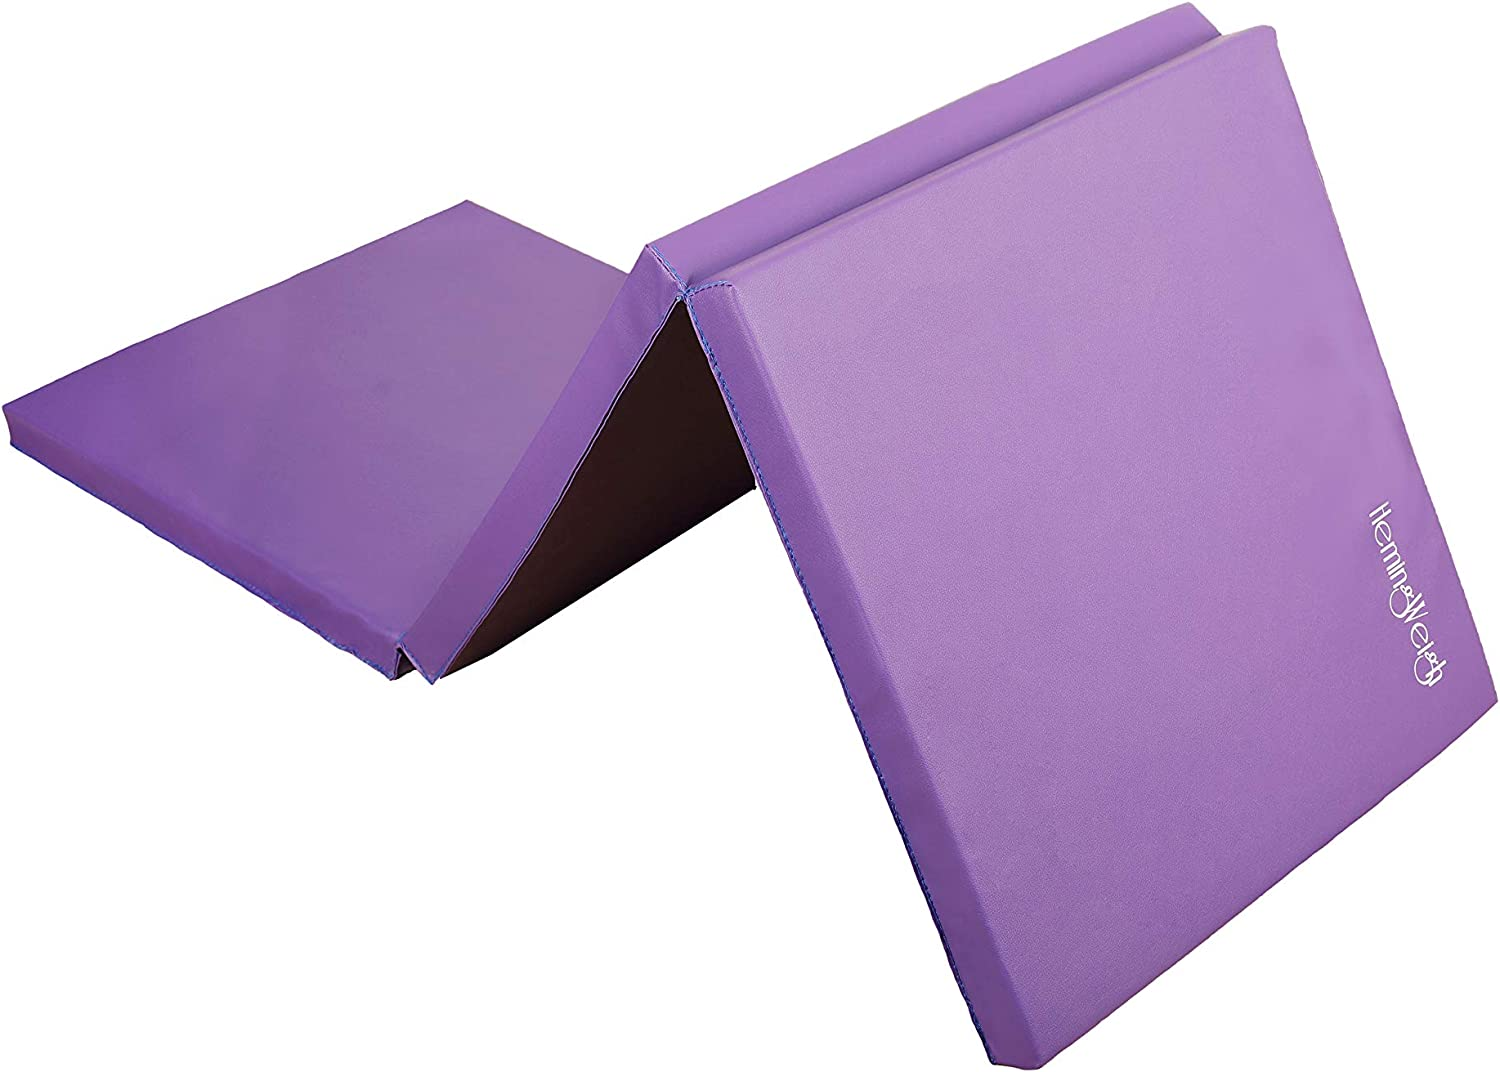 HemingWeigh Gymnastic Mat, Lightweight, Portable, Easy-Maintenance, Great for Yoga, Pilates, Aerobics, Martial Arts